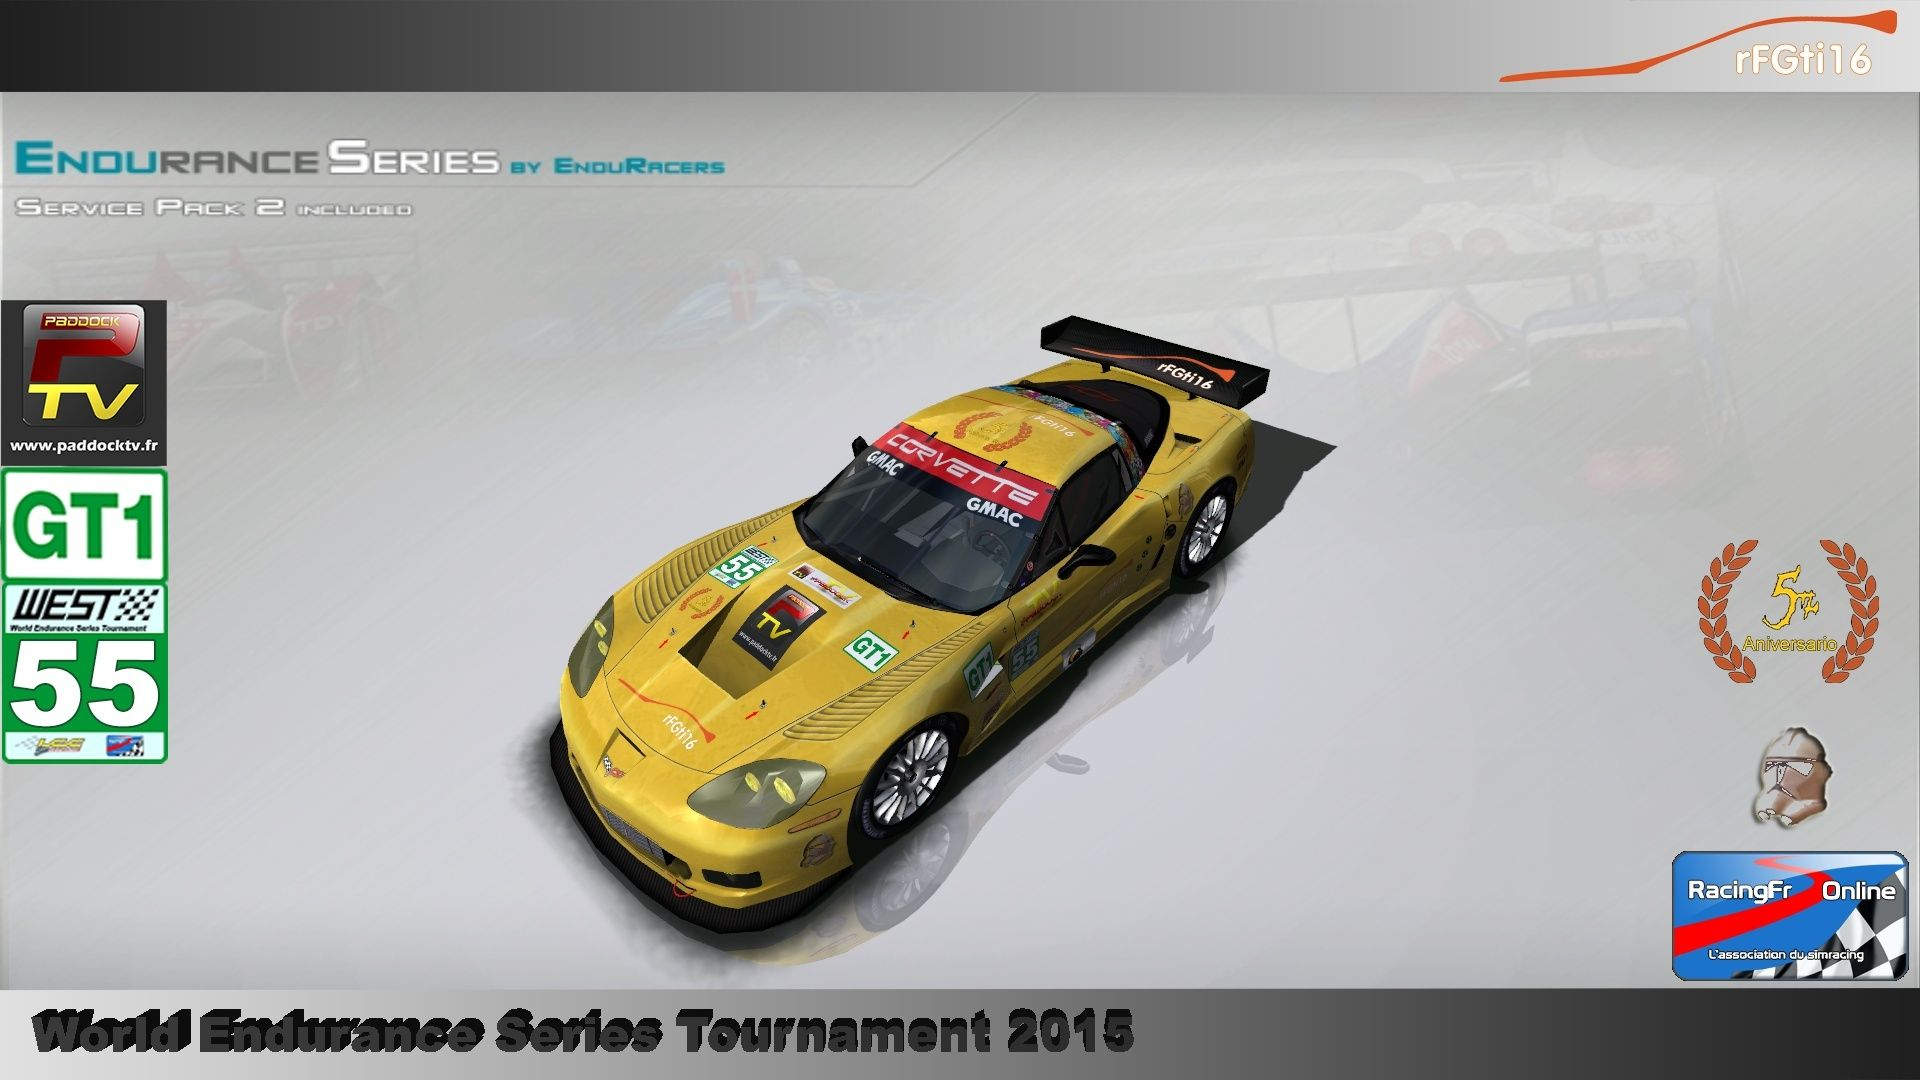 WEST 2015 Endurance Series championship P2/GT1 00110